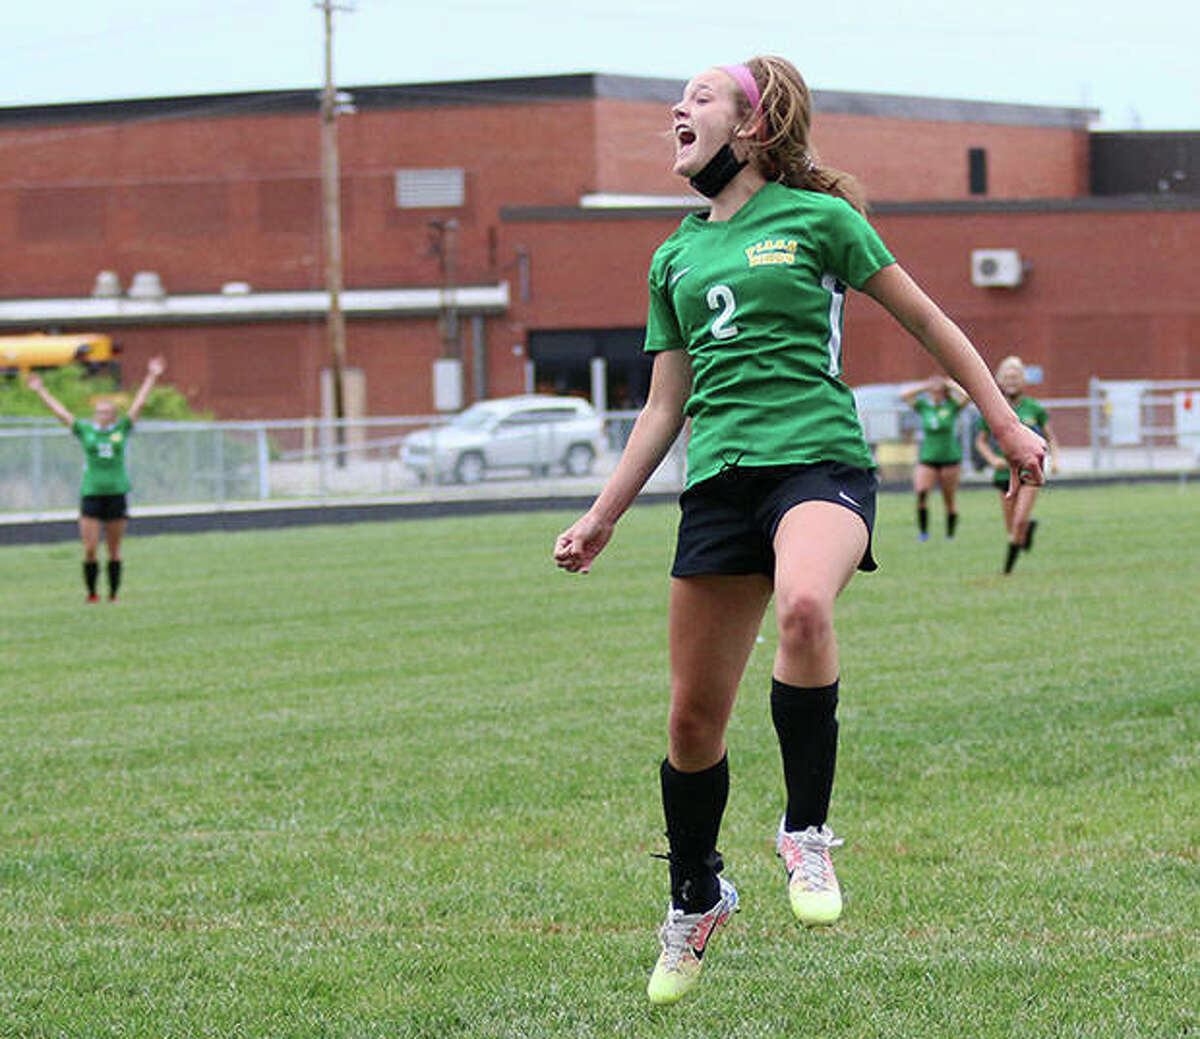 Southwestern sophomore Ali Wilson reacts after scoring a goal with two seconds left in the first half against Carlinville in a Class 1A regional semifinal game in Piasa. Wilson scored three goals in the Piasa Birds loss and ended her sophomore season with 38 goals.